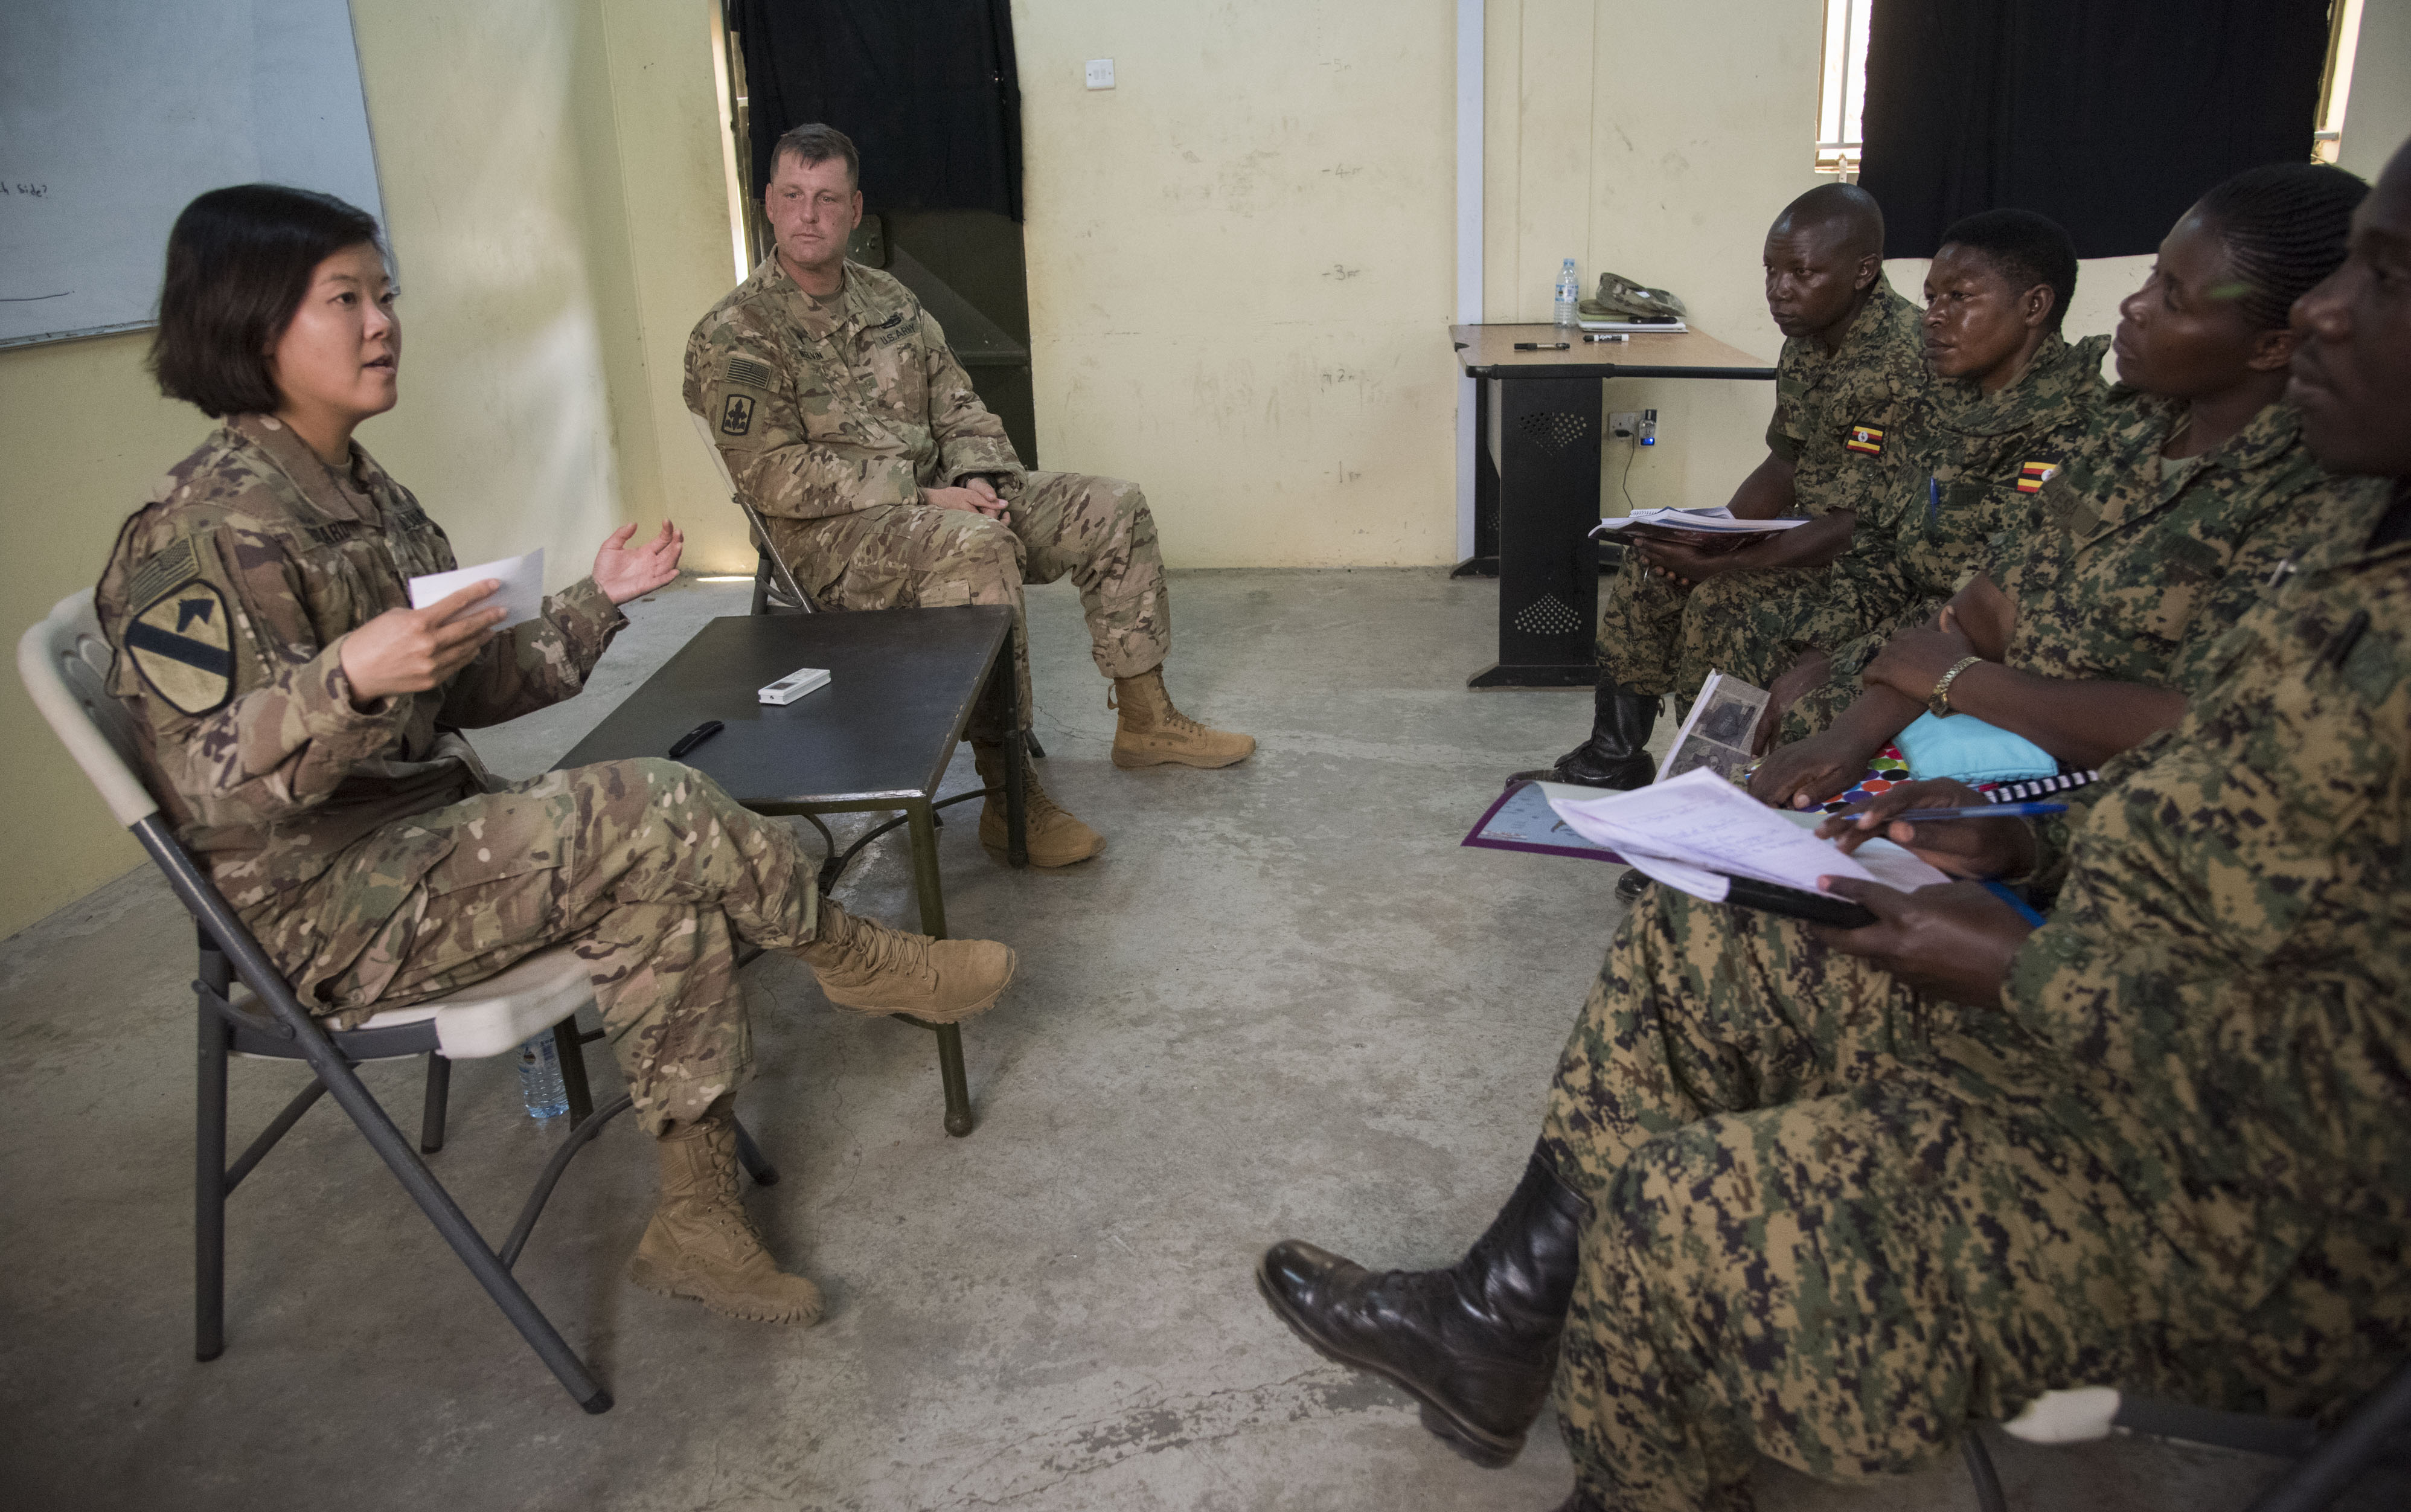 U. S. Army Sgt. 1st Class Bethany Bedard, assigned to the 407th Civil Affairs (CA) Battalion, and Chaplain (Maj.) Christopher Melvin, Religious Affairs, attached to the Combined Joint Task Force - Horn of Africa, conduct a mock Civil-Military (CIMIC)  interview with soldiers from the Uganda People's Defence Force (UPDF) as part of a Civil Affairs Tactical Company Course held at Camp Singo, Uganda, Feb. 08, 2018.  CJTF-HOA service members are forward deployed to Camp Singo to advise and assist the UPDF in preparing Ugandan Battle Group 25 for an upcoming deployment in support of the African Union Mission in Somalia (AMISOM). (U.S. Air National Guard photo by Staff Sgt. Allyson L. Manners)